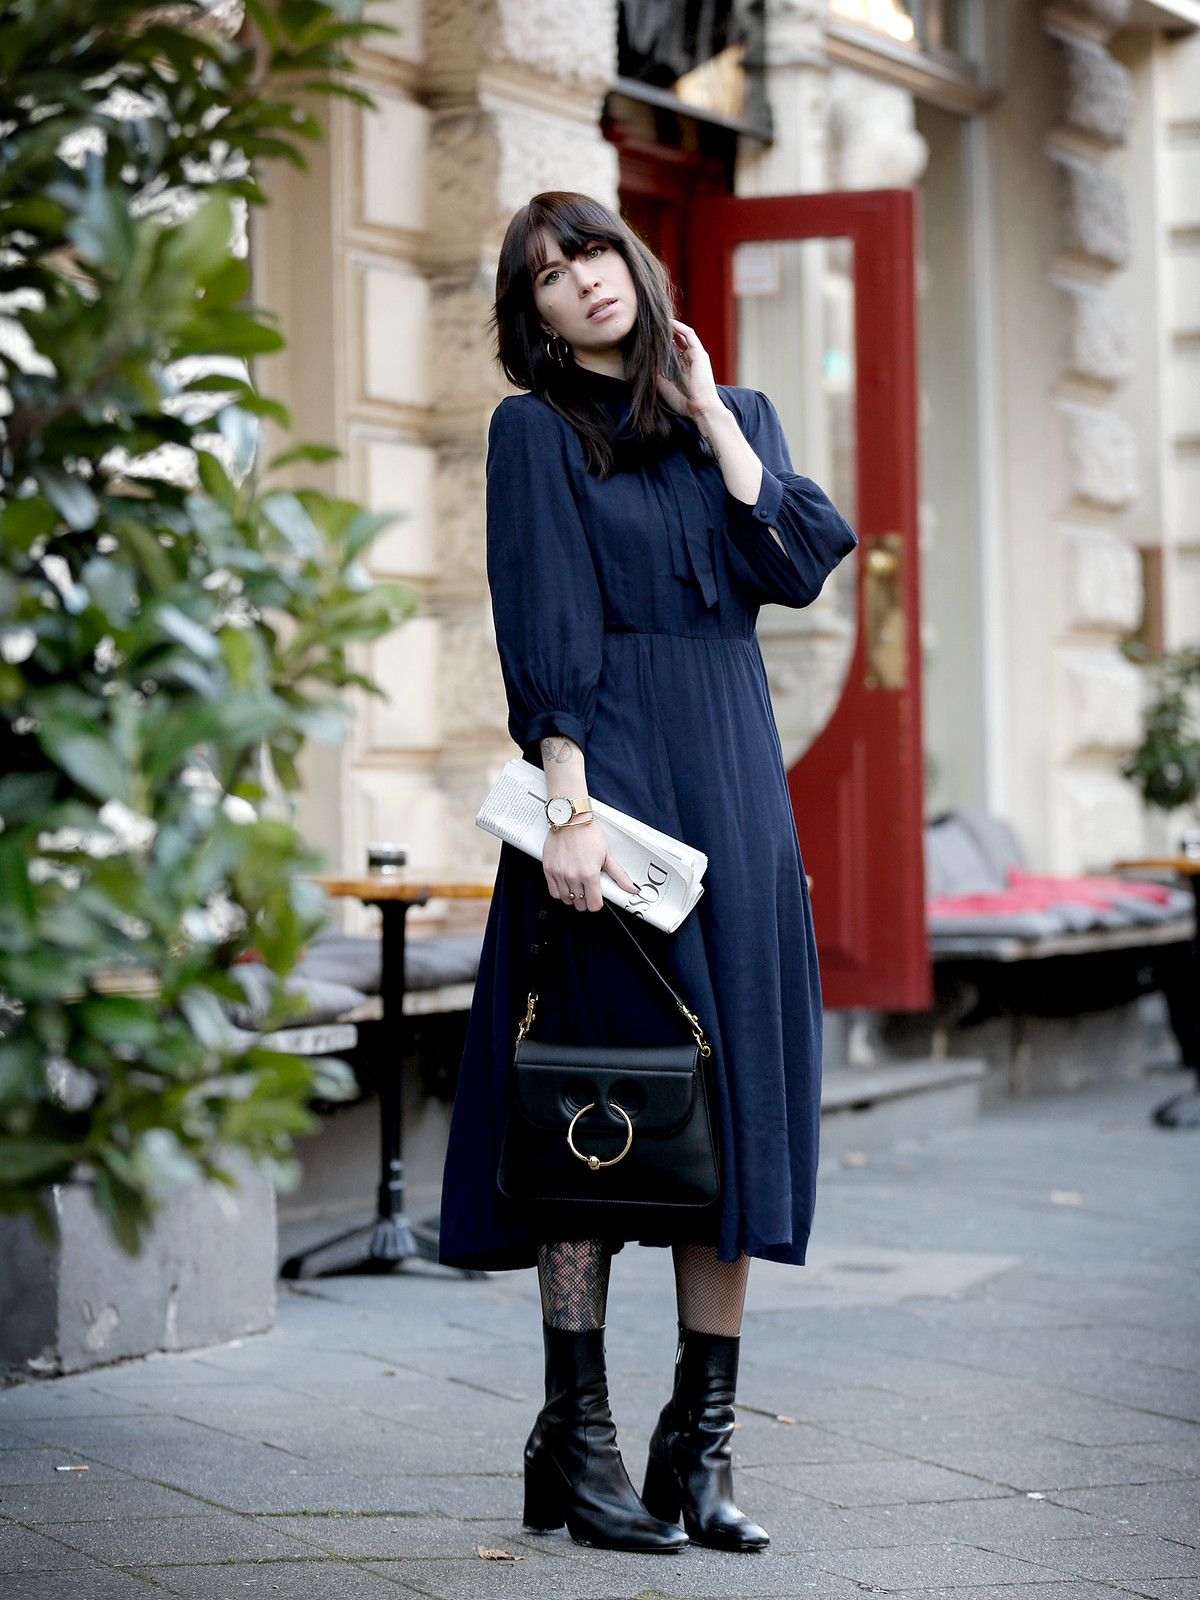 mint&berry midi dress blue navy 60s boots parisienne j.w.anderson pierce bag black bangs brunette newspaper cafe chic fashionblogger paris germanblogger cats & dogs ricarda schernus modeblogger berlin düsseldorf 8